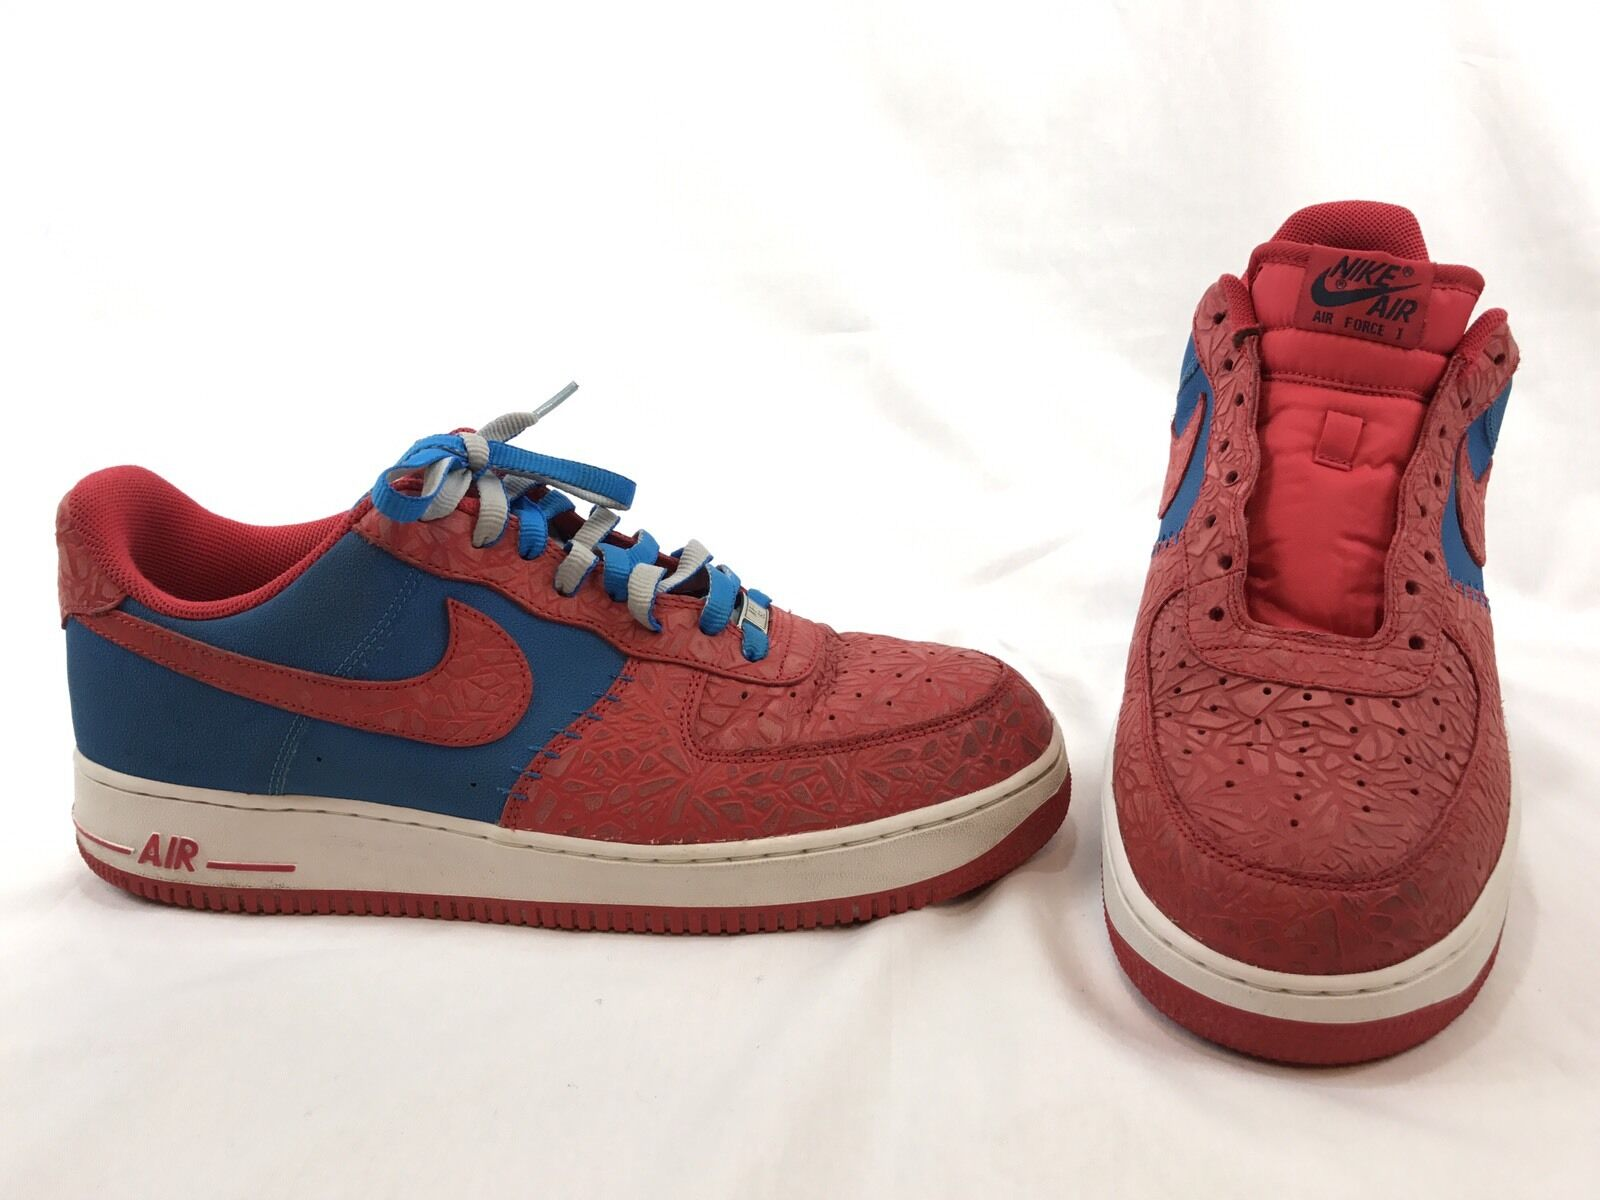 Nike Air Force 1 Low Photo Blue Hyper Red Shoes 488298-412 Sz 13 Elephant Print